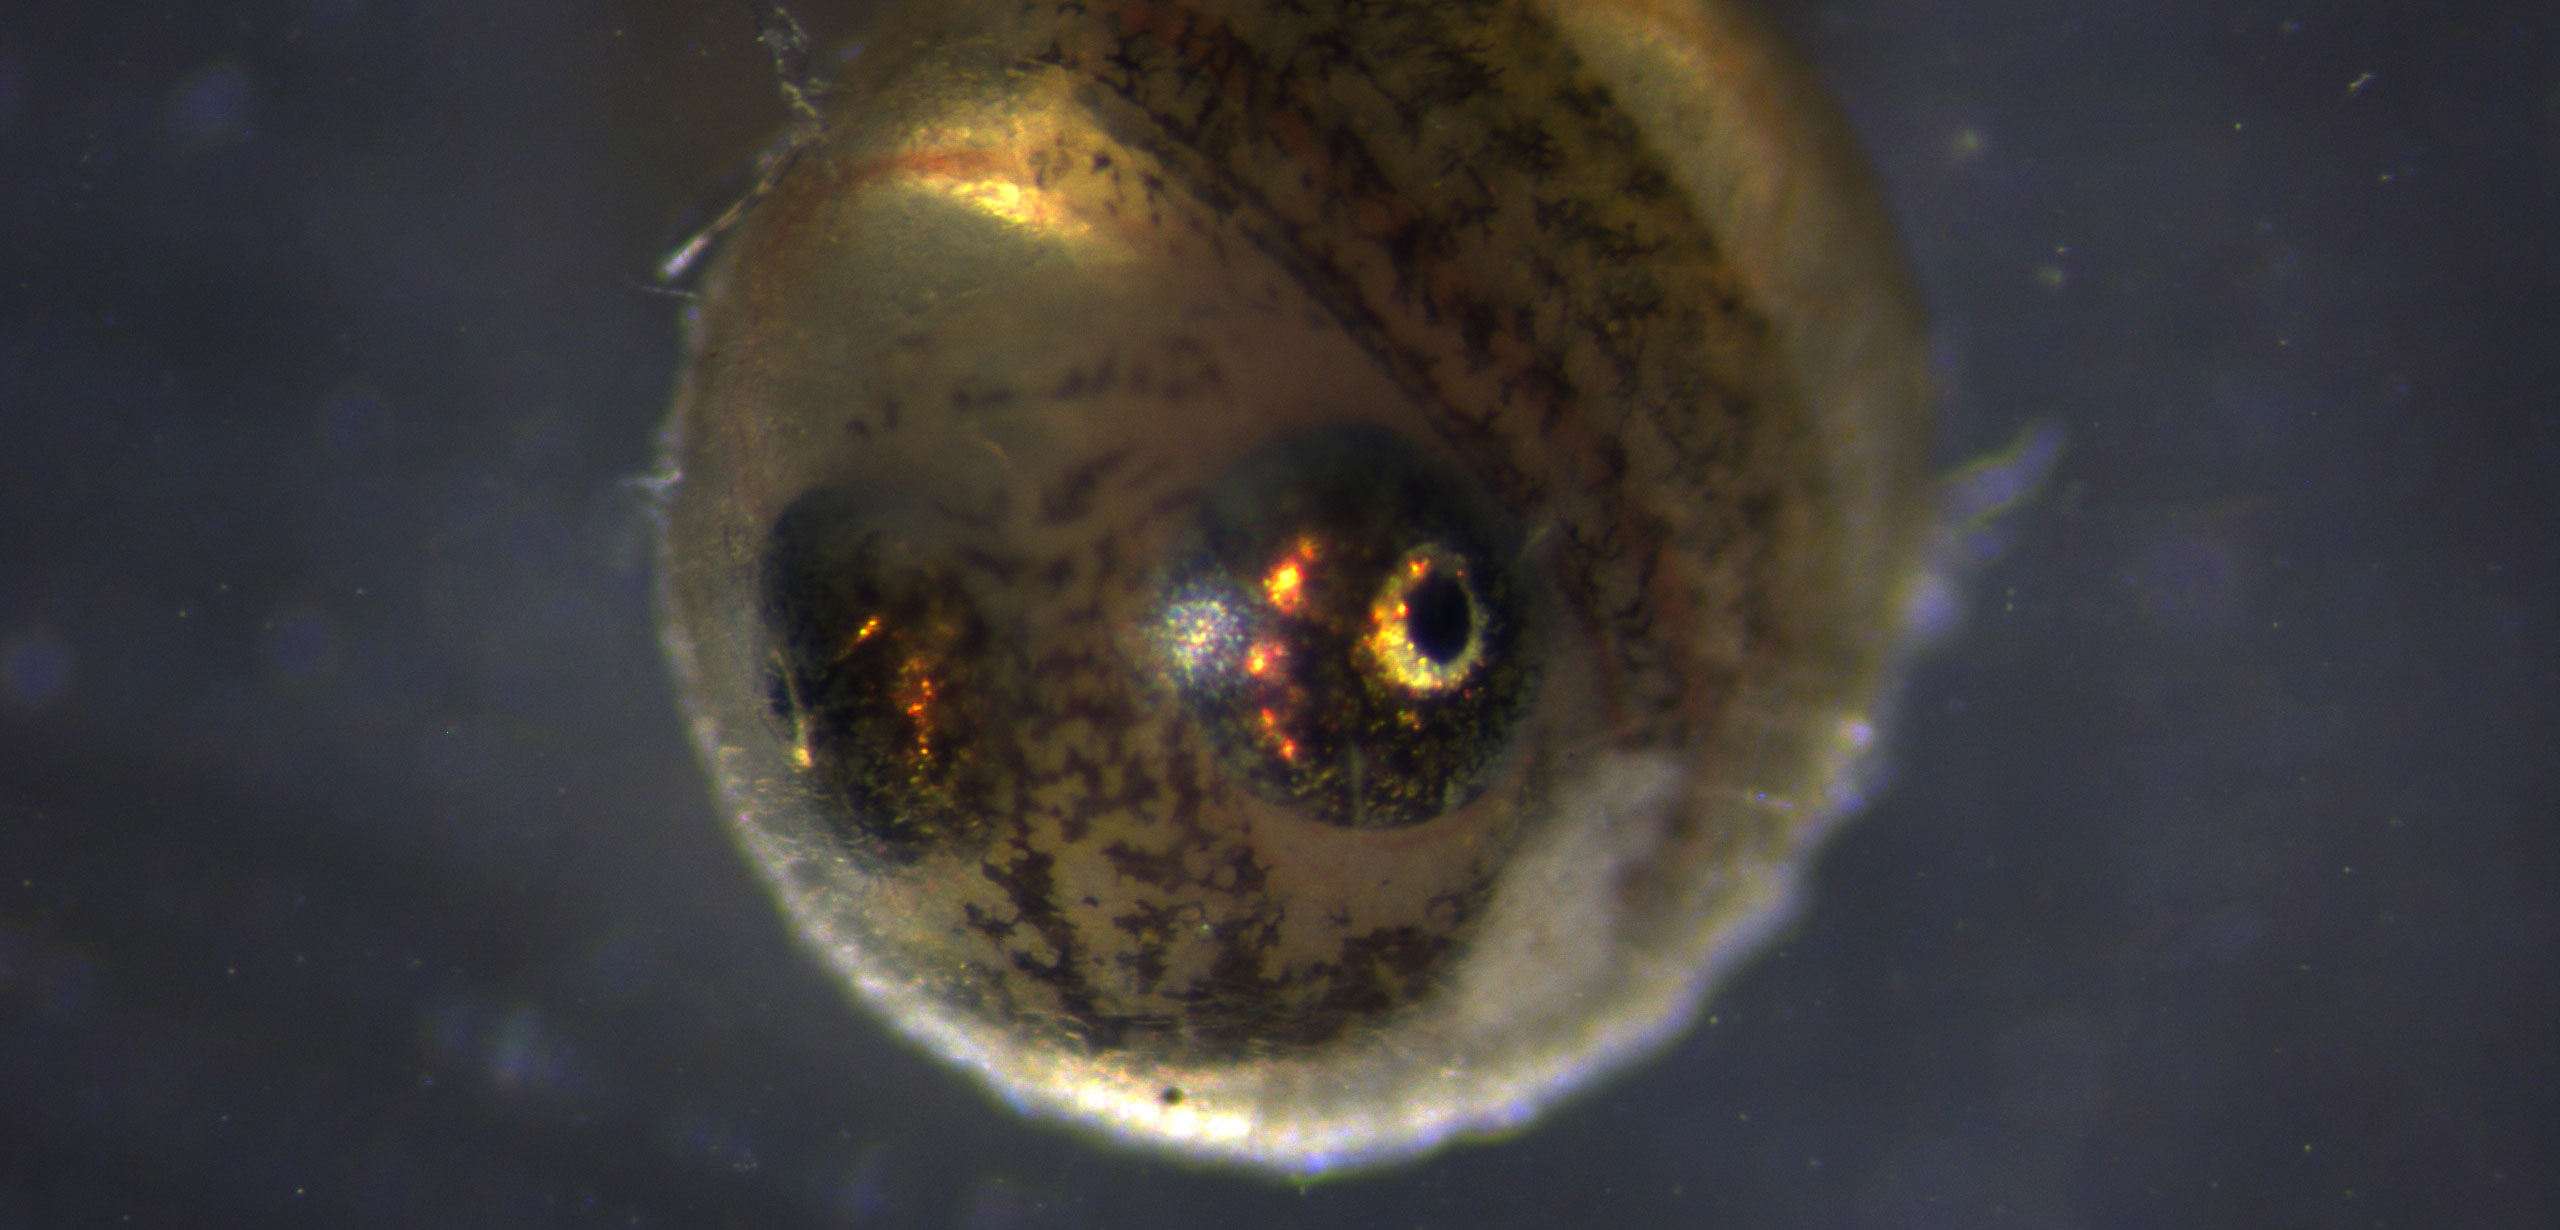 killifish egg that was eaten by a coscoroba swan, seven days before hatching